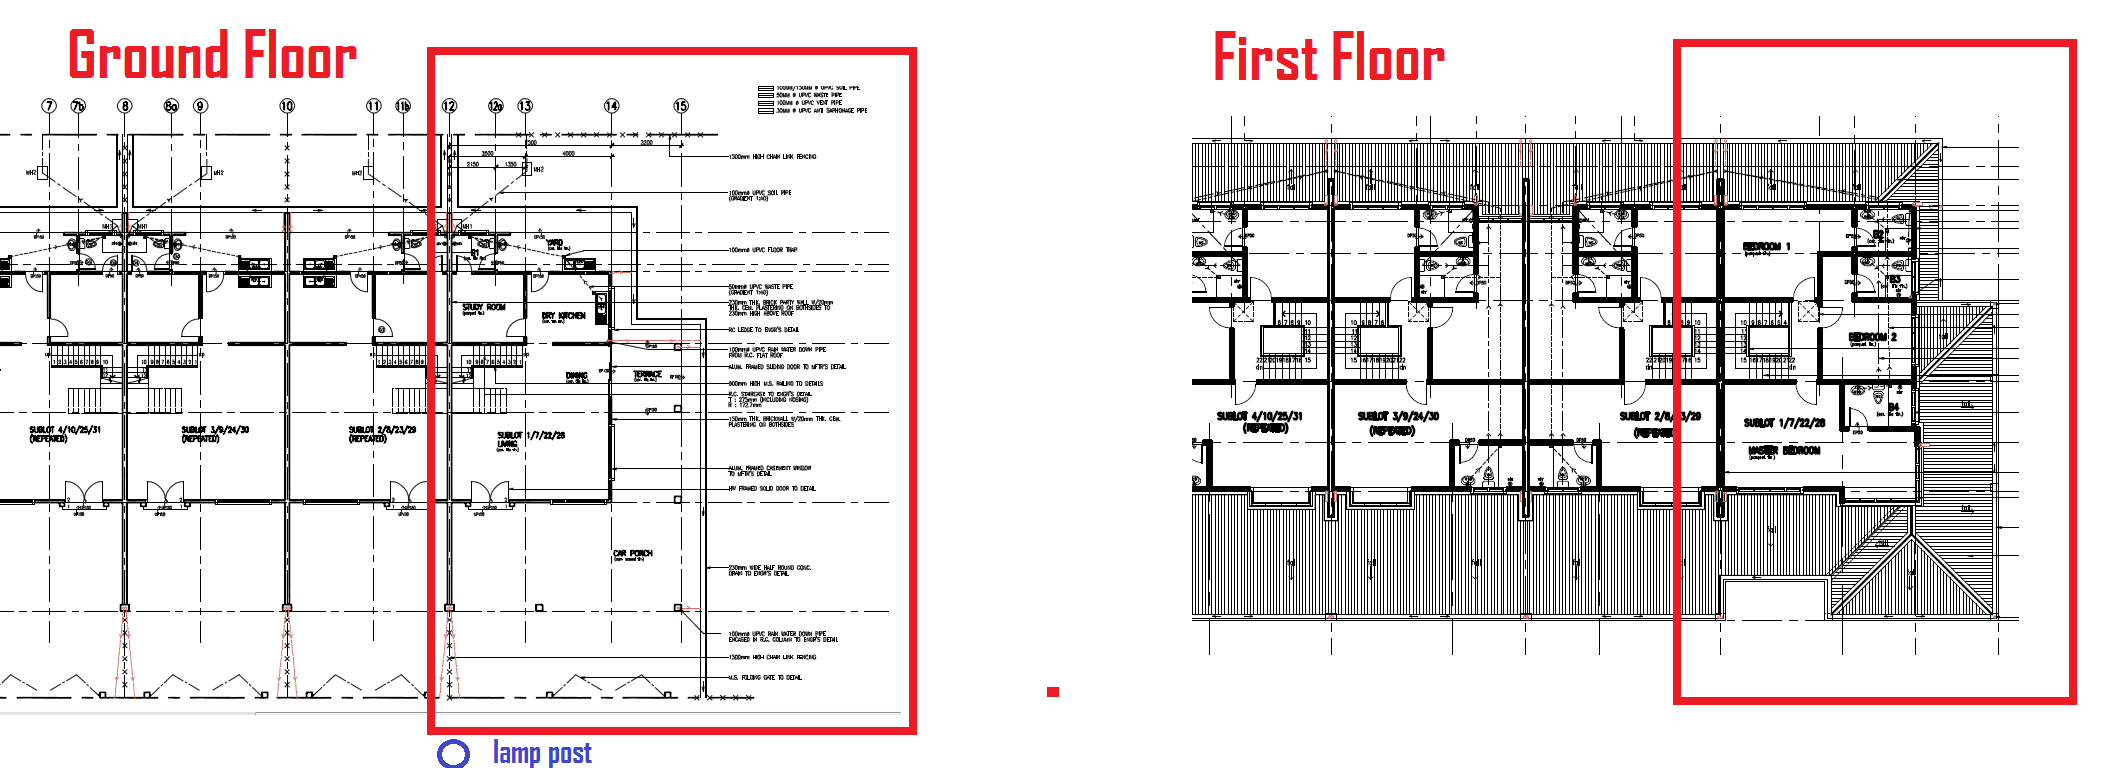 Fengshui For My New House General Help Fengshui